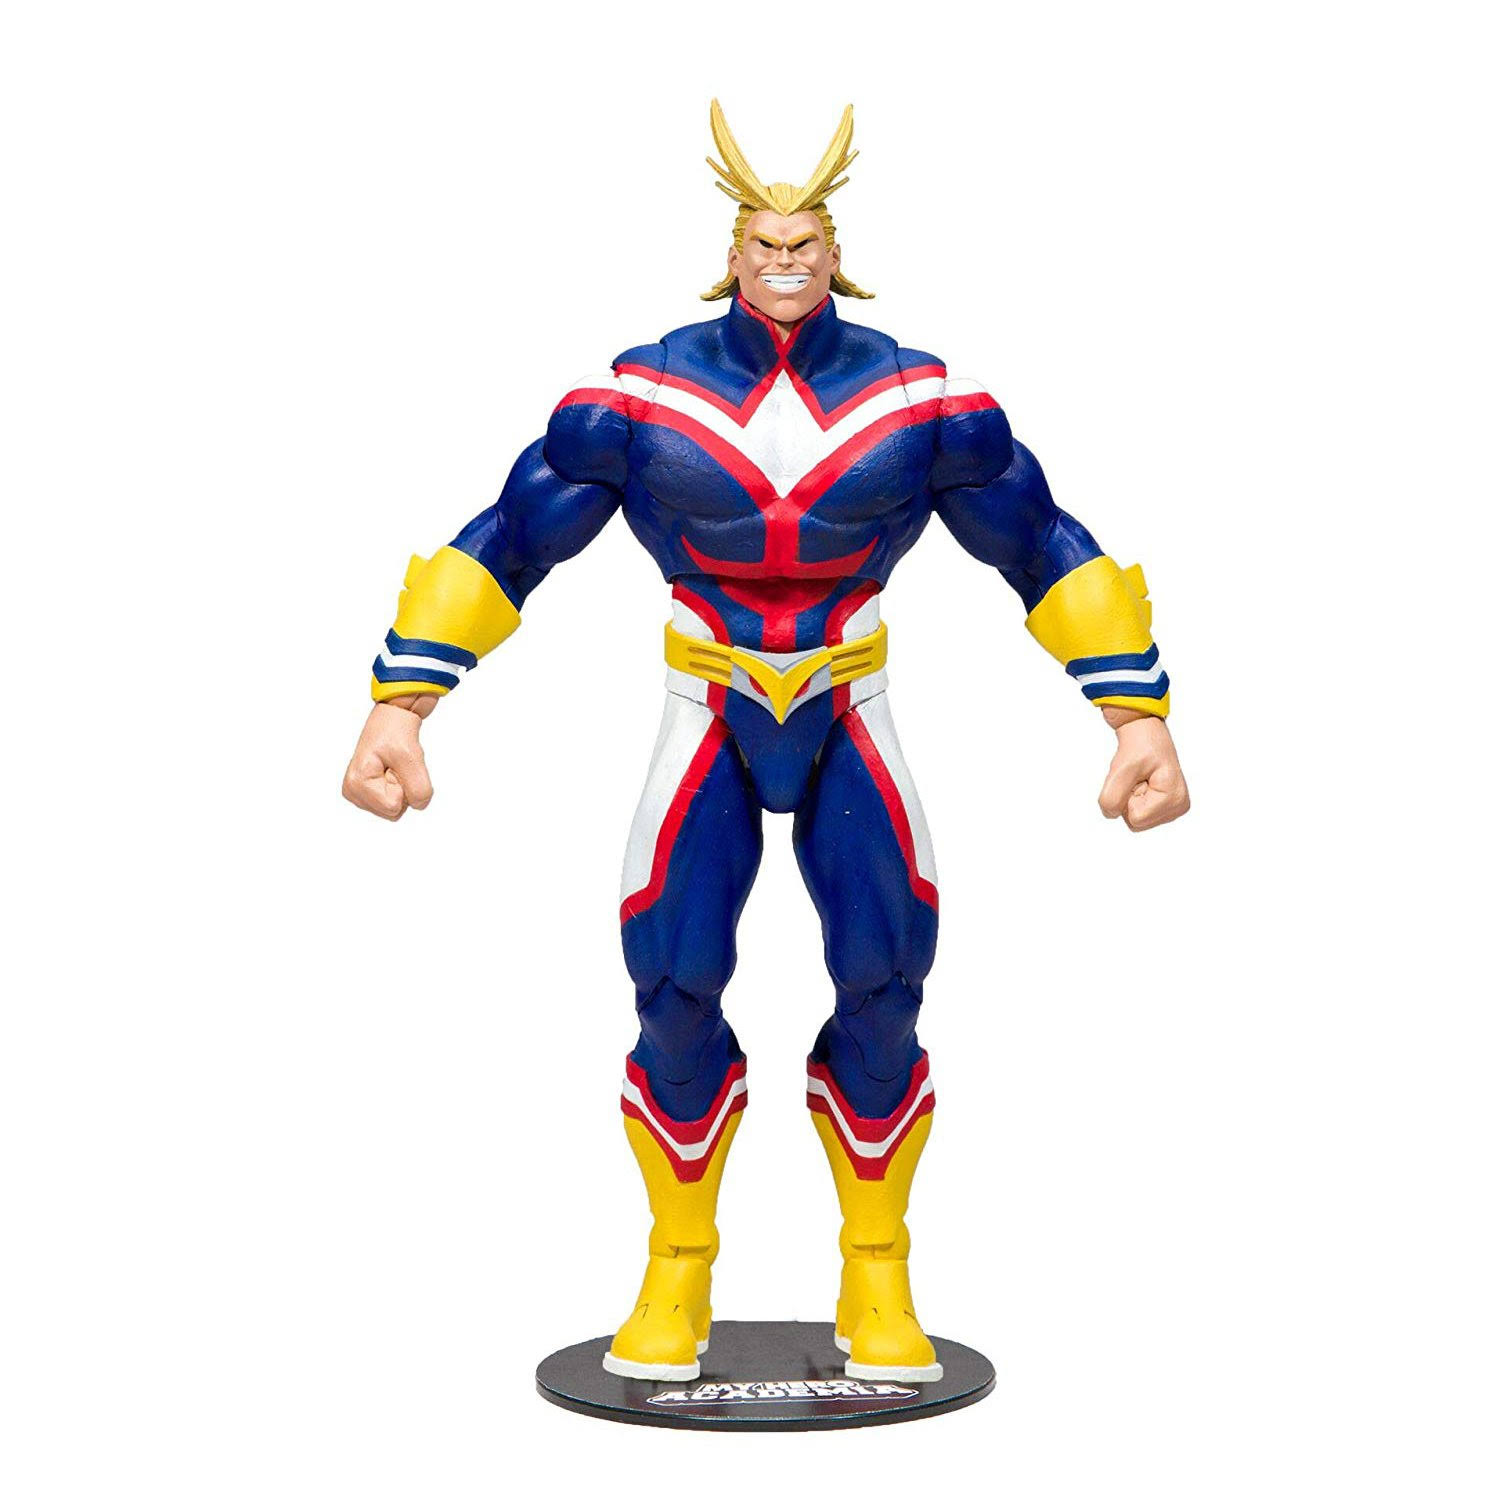 McFarlane Toys My Hero Academia Action Figure - All Might, 7in